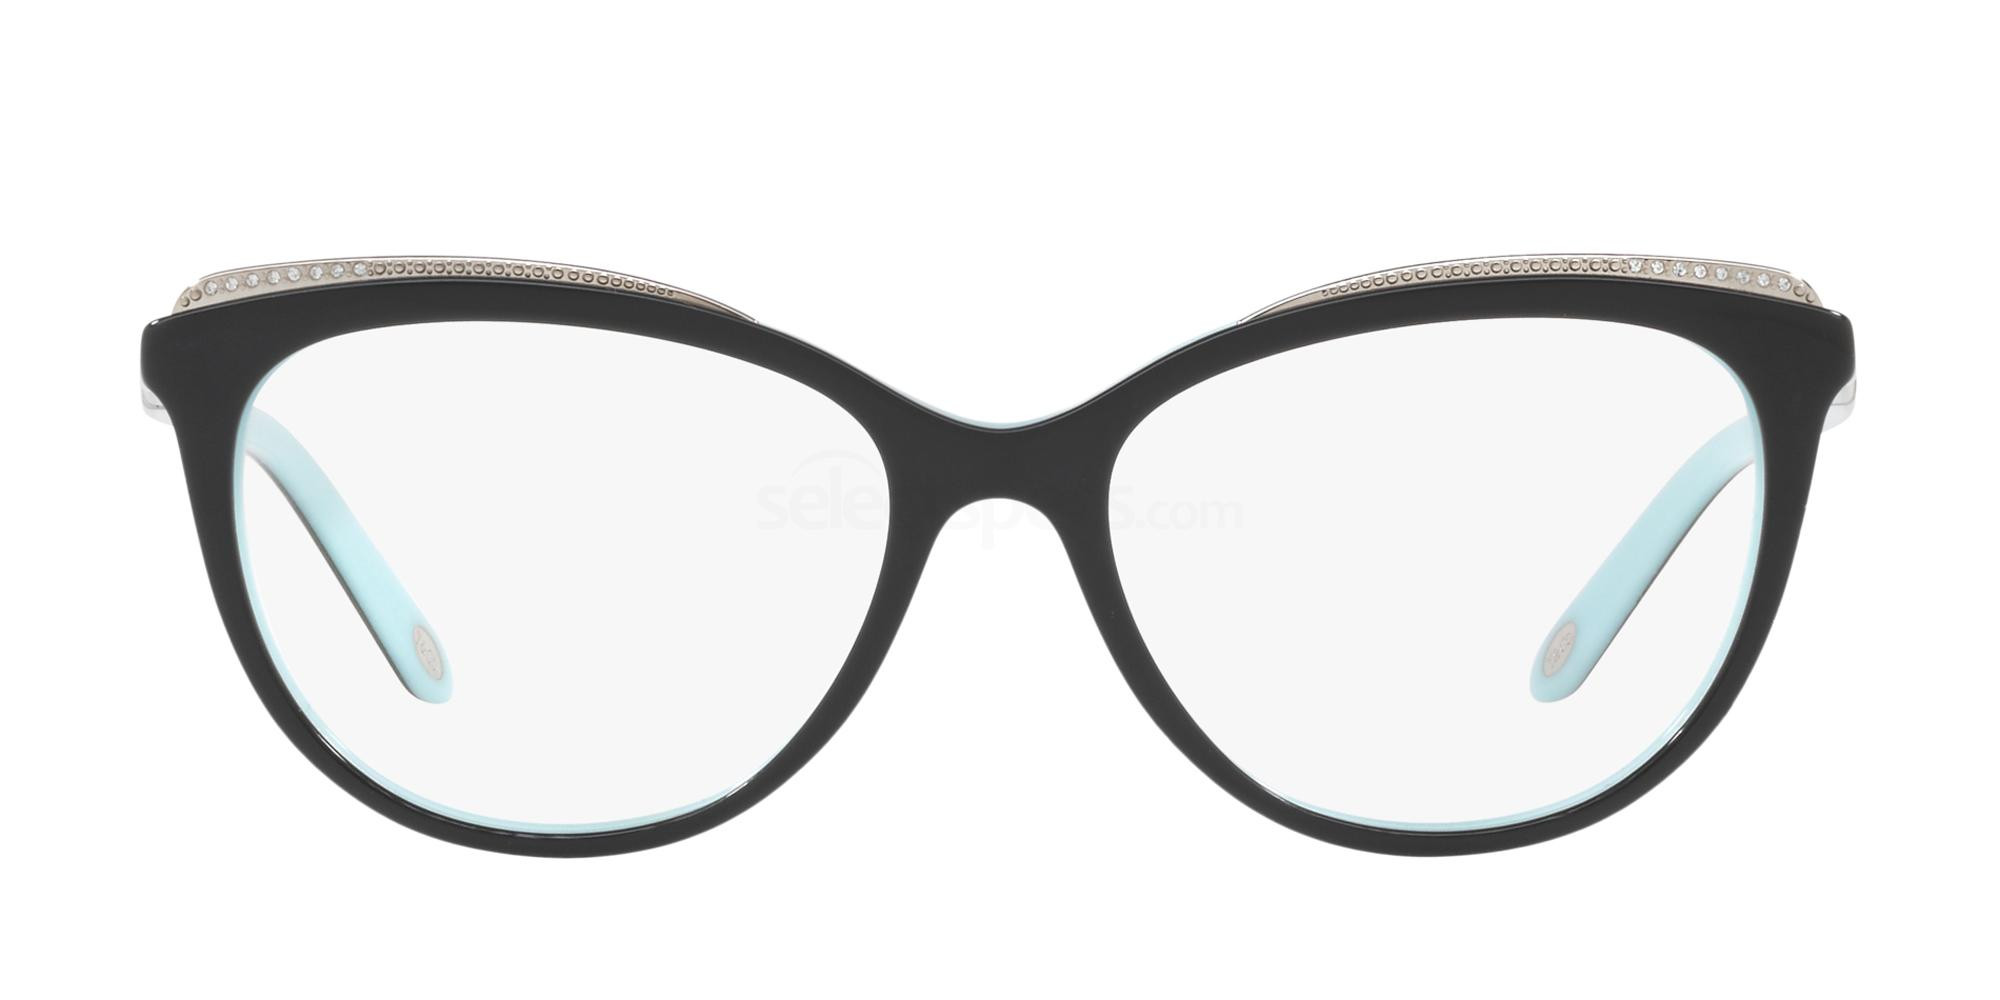 Tiffany & Co. TF2147B glasses | Free lenses | SelectSpecs